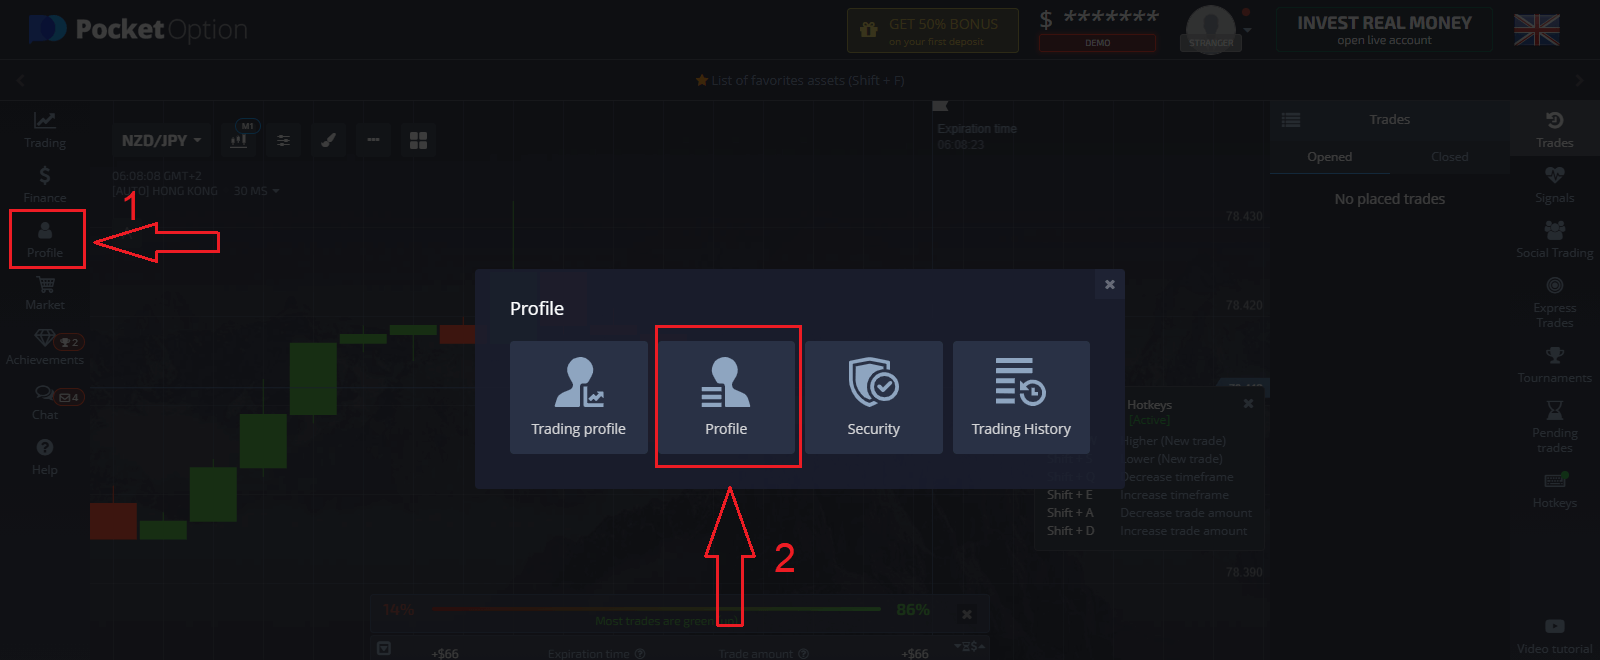 Frequently Asked Questions (FAQ) in Pocket Option